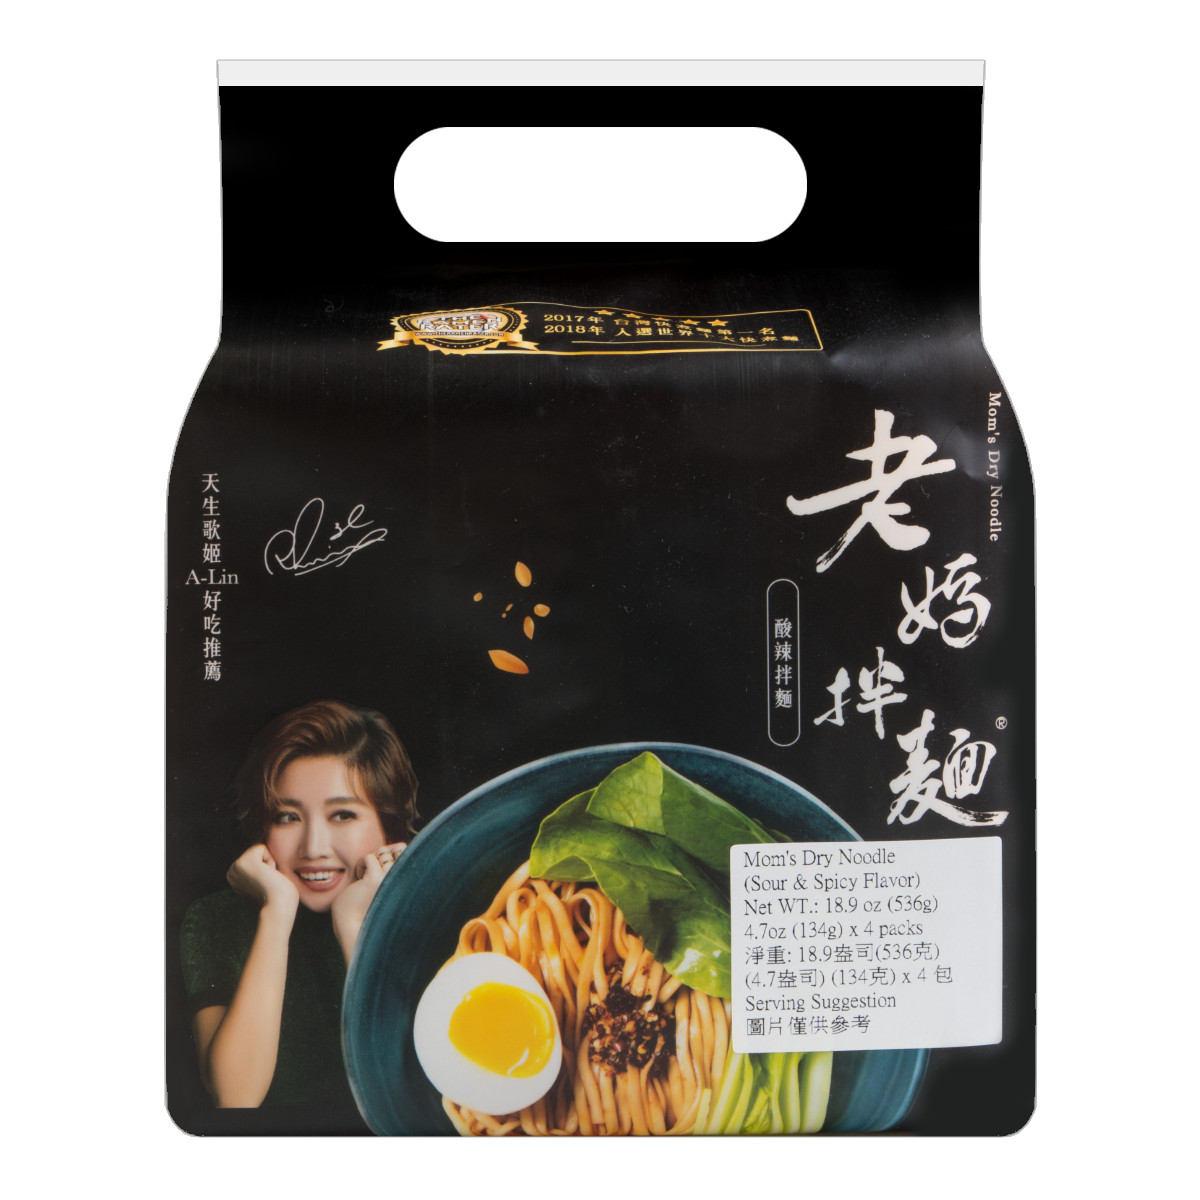 Mom's Dry Noodle Sour & Spicy Flavor 4pack 536g